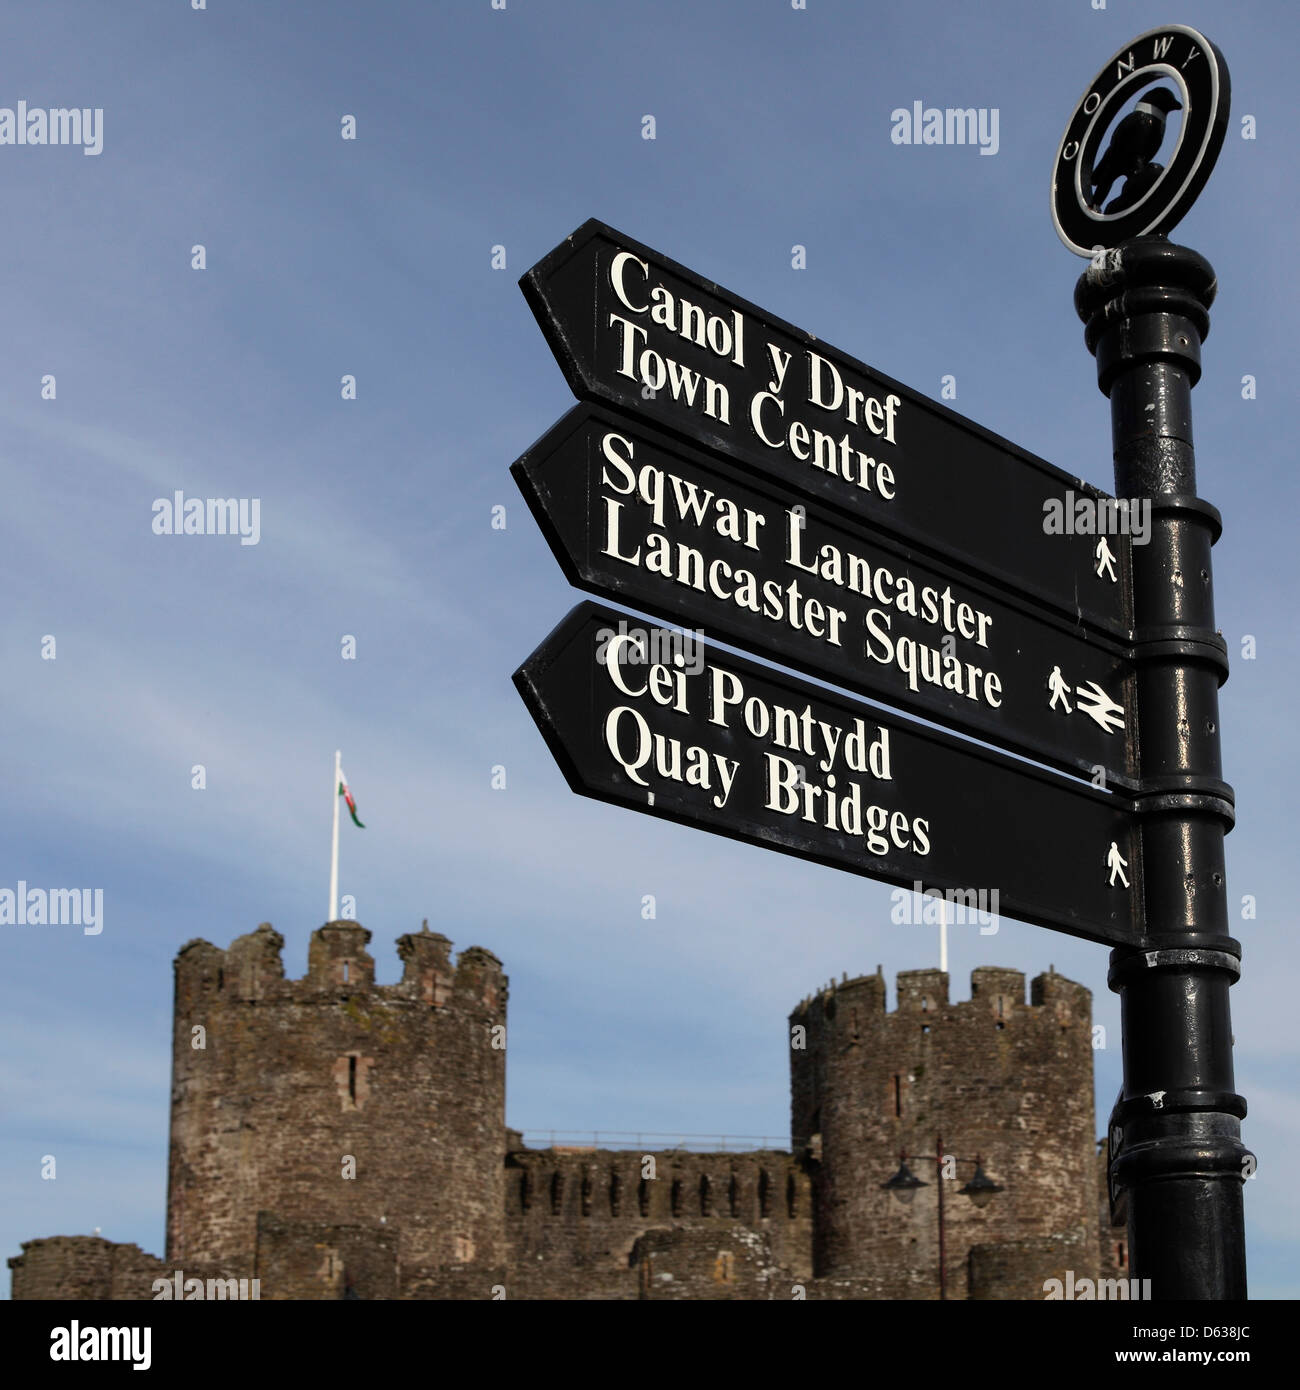 Local points of interest are listed on a sign by Conwy Castle in Wales. - Stock Image